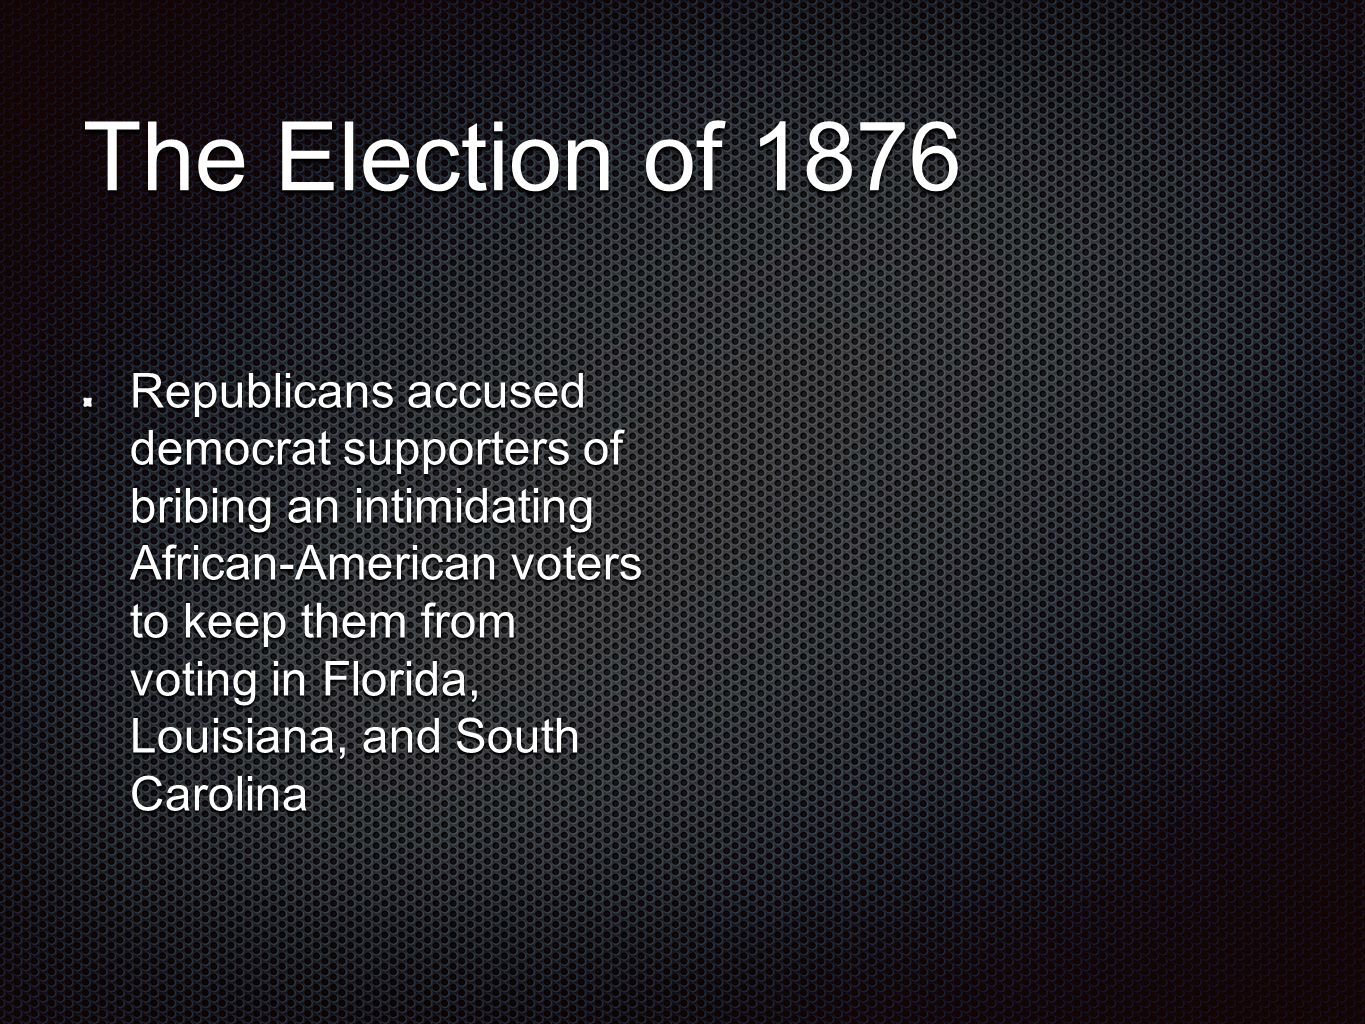 The Election of 1876 Republicans accused democrat supporters of bribing an intimidating African-American voters to keep them from voting in Florida, Louisiana, and South Carolina